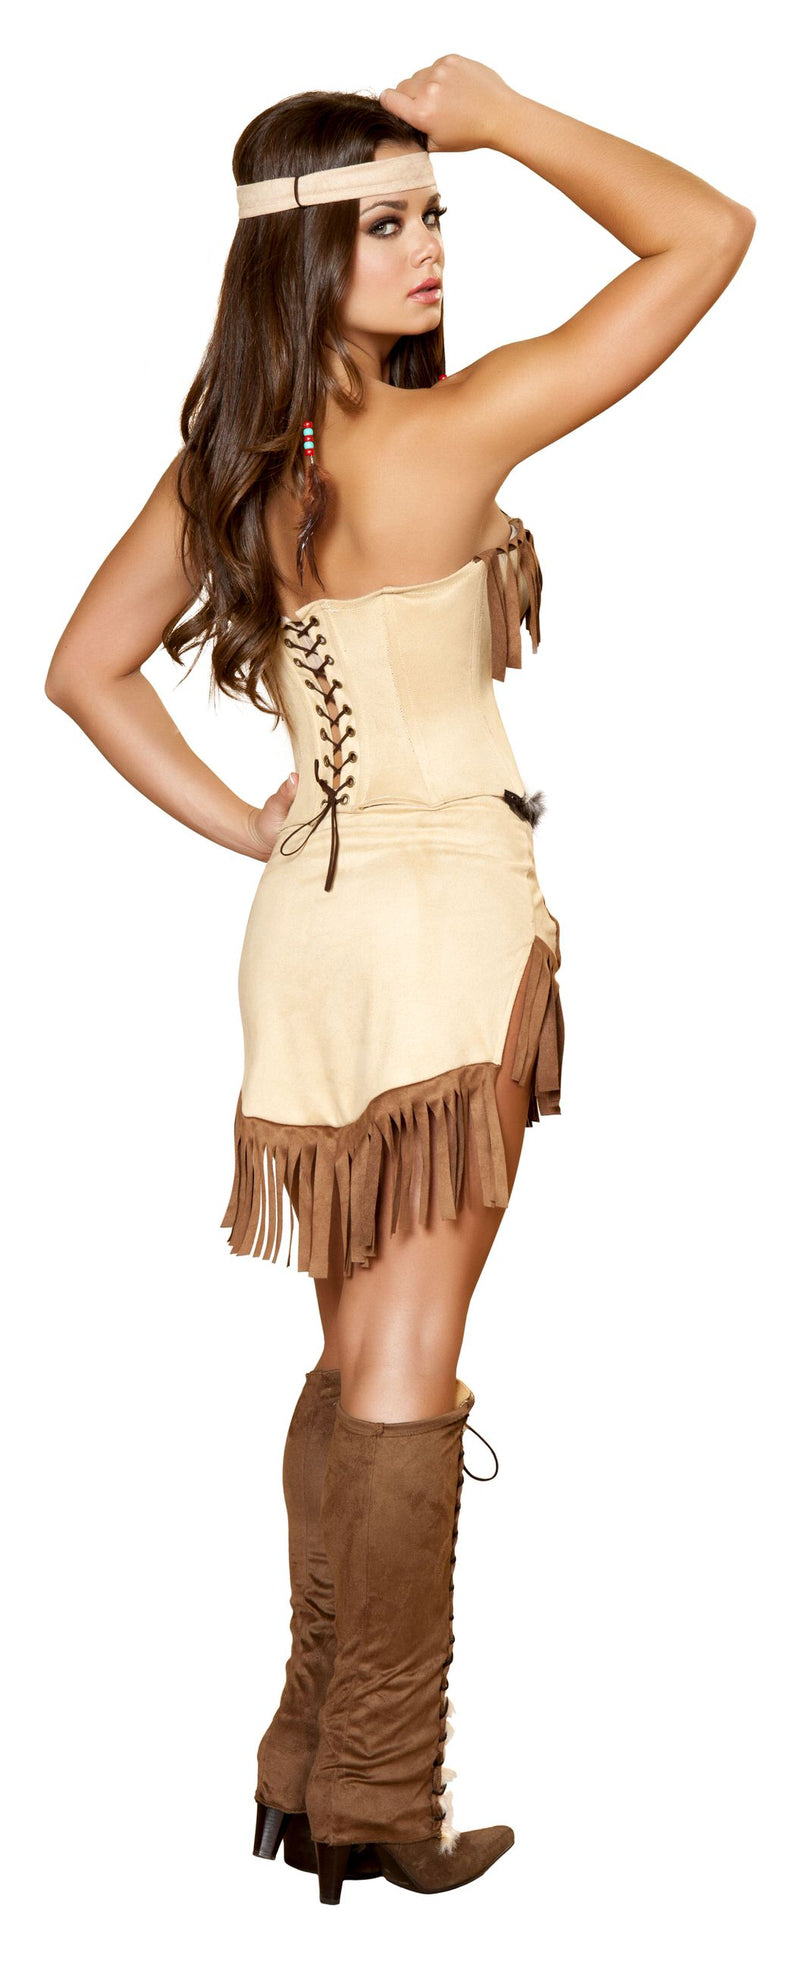 3 Piece Indian Princess Tan Fringe Fur Corset & Shorts Costume - Fest Threads